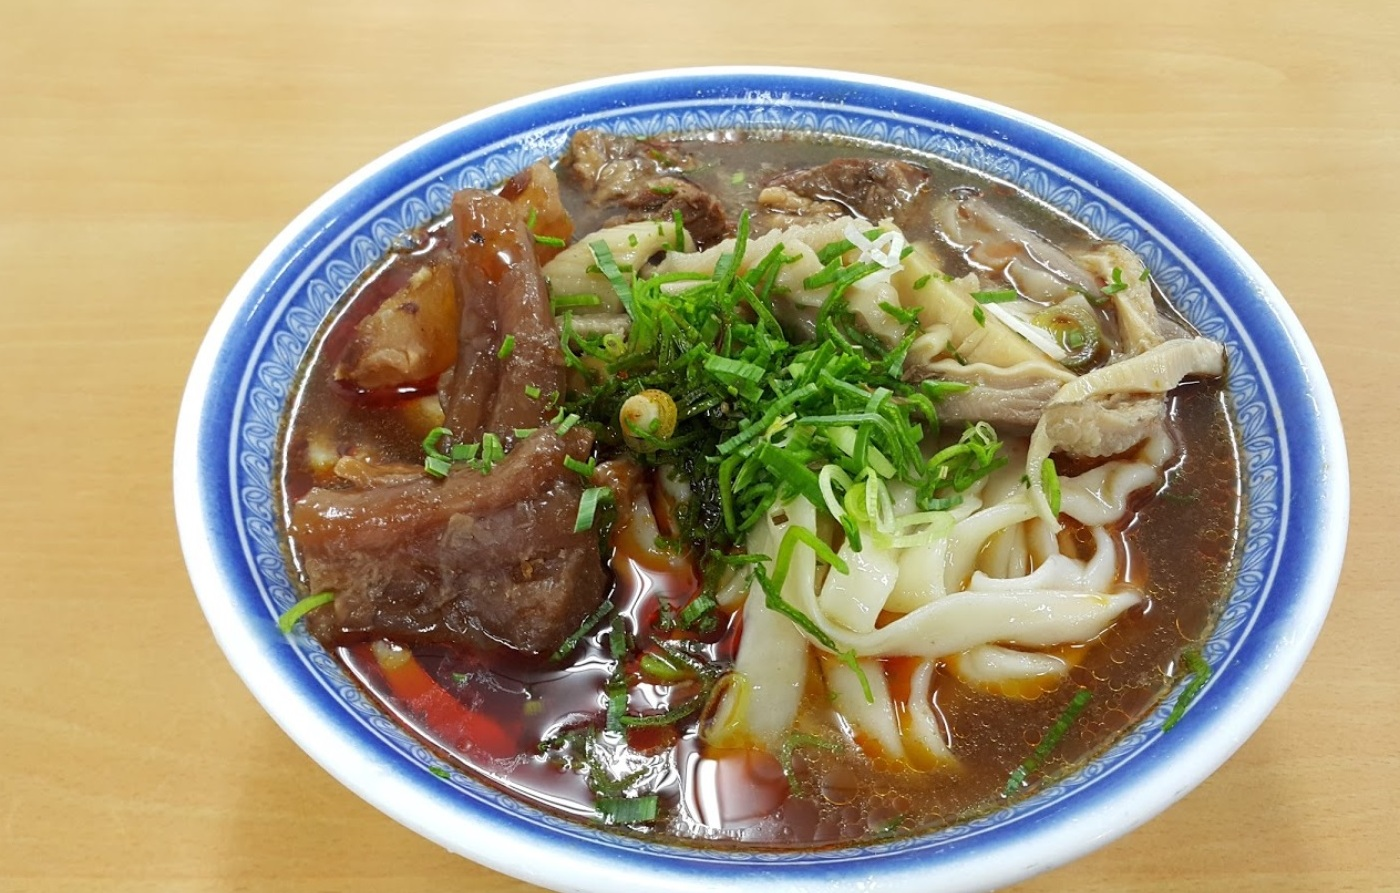 Image result for AI JIA BEEF NOODLES